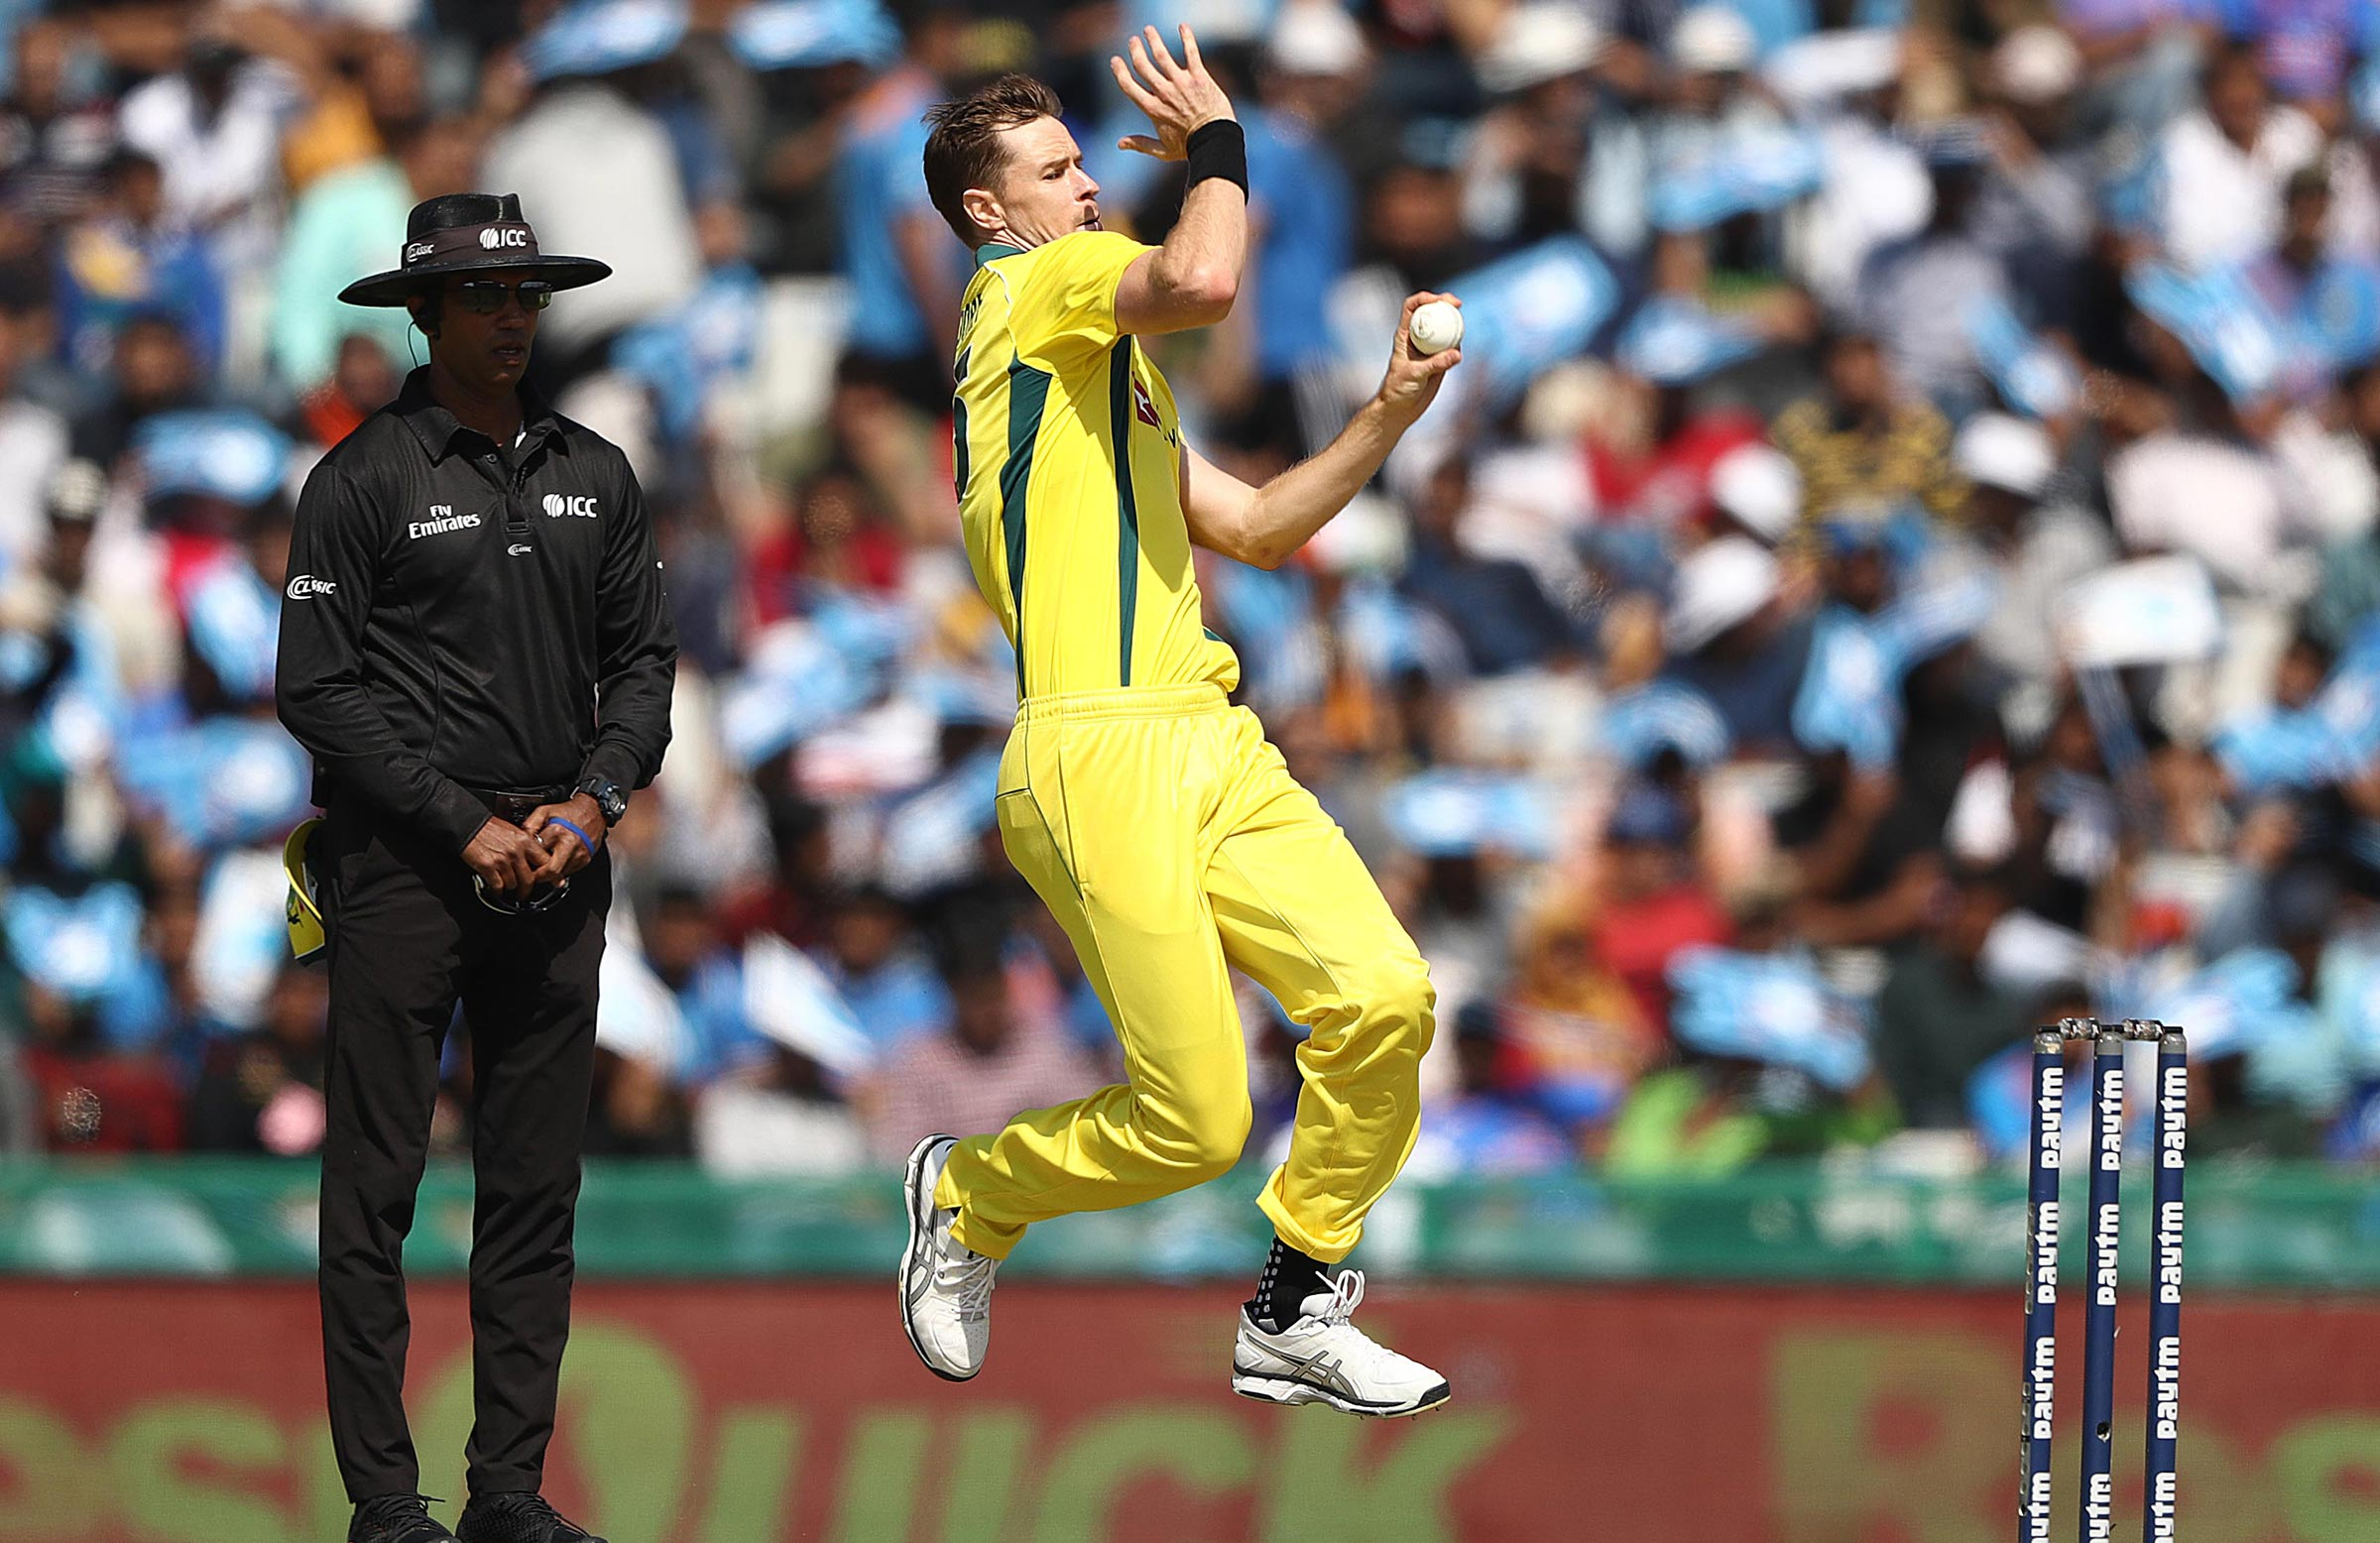 The IPL looms as a Cup audition for Behrendorff // Getty